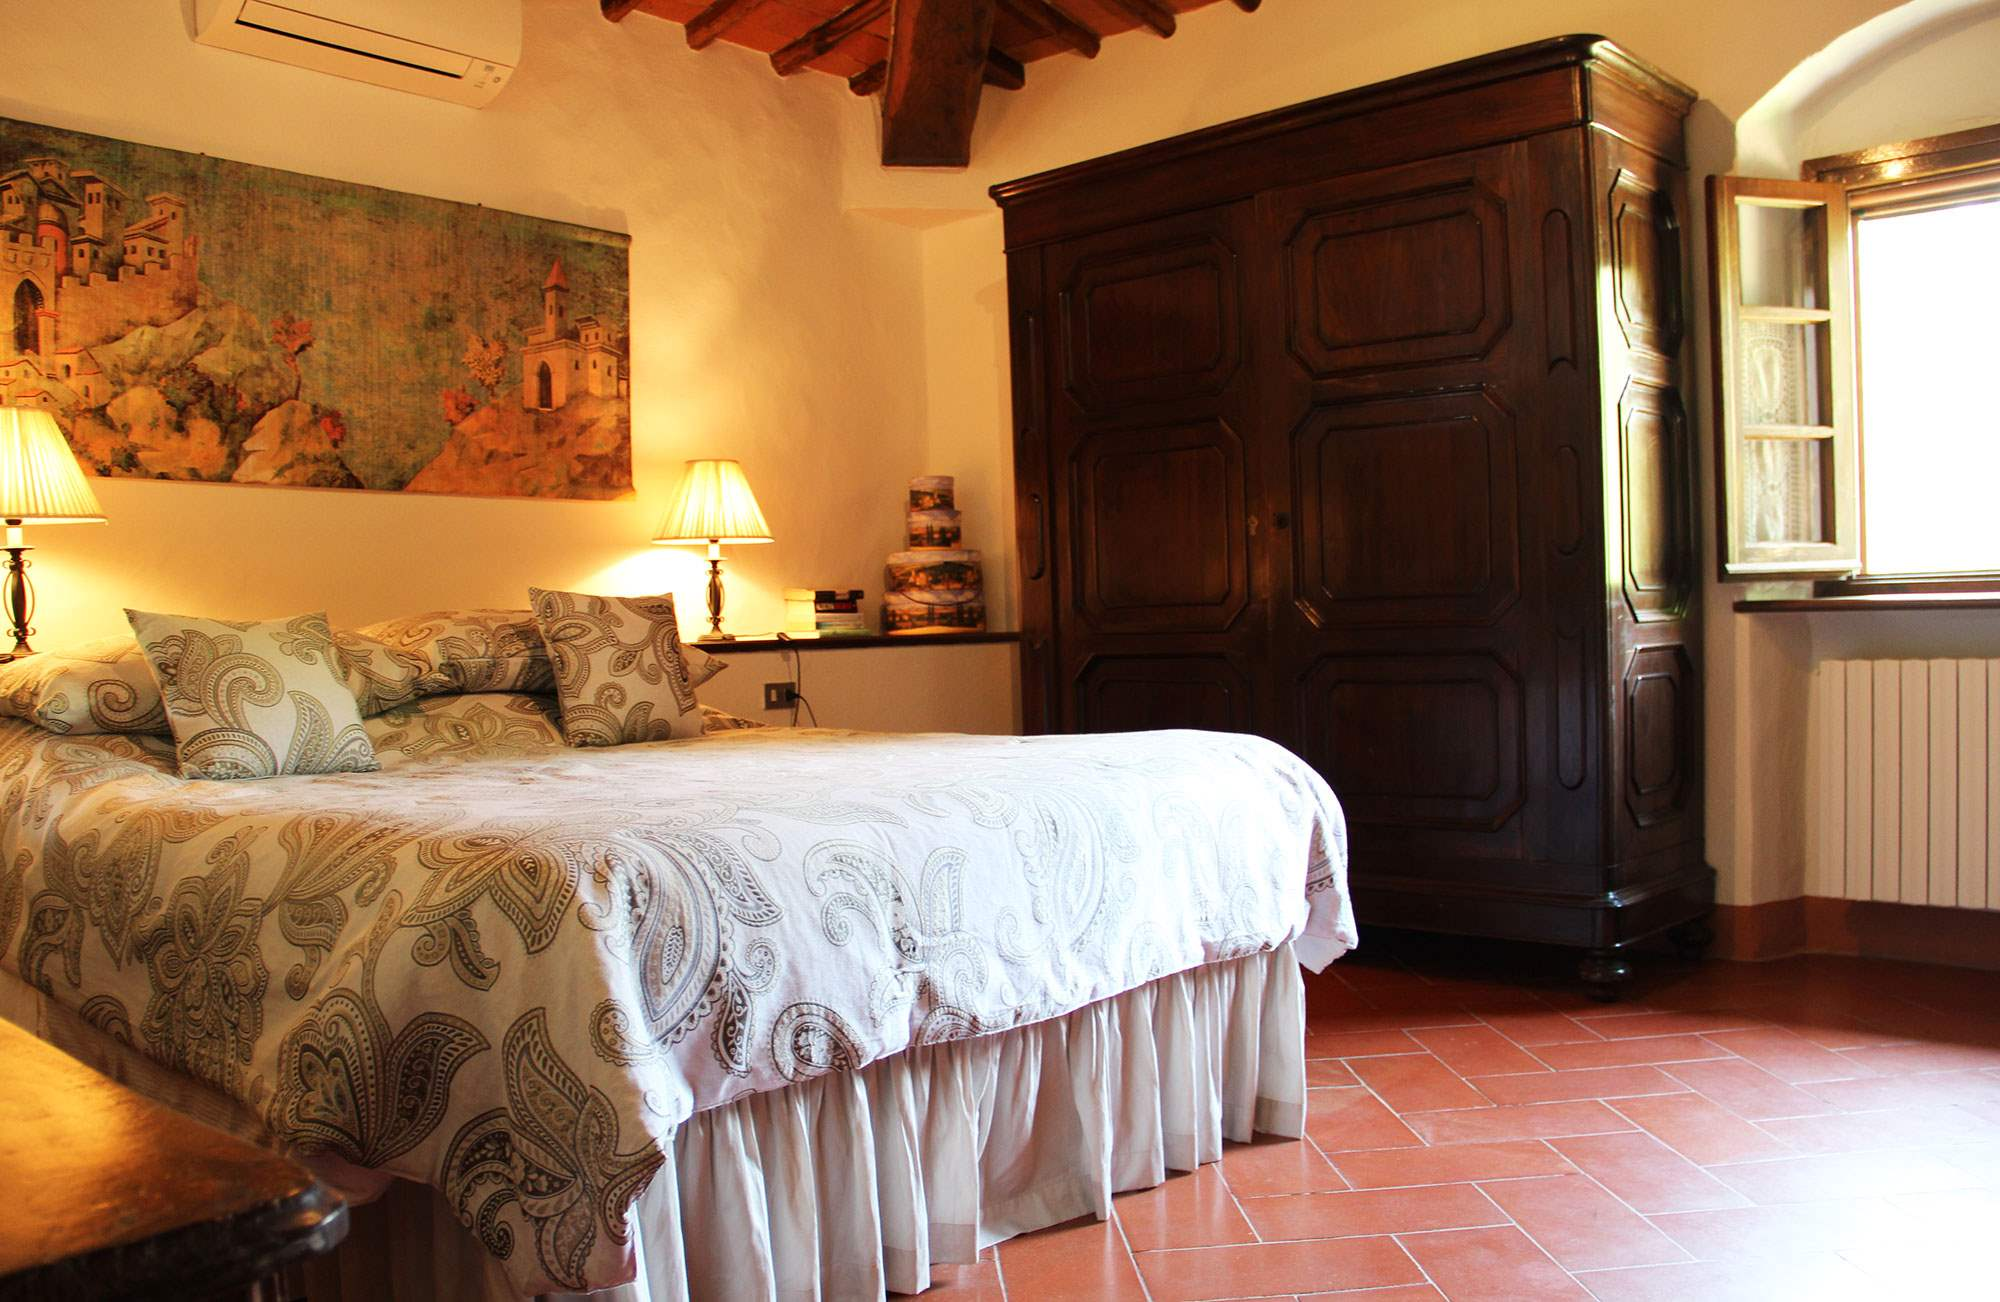 Villa Felicita, Main house only, 6 persons rate, 3 bedroom villa in Chianti & Countryside, Tuscany Photo #17